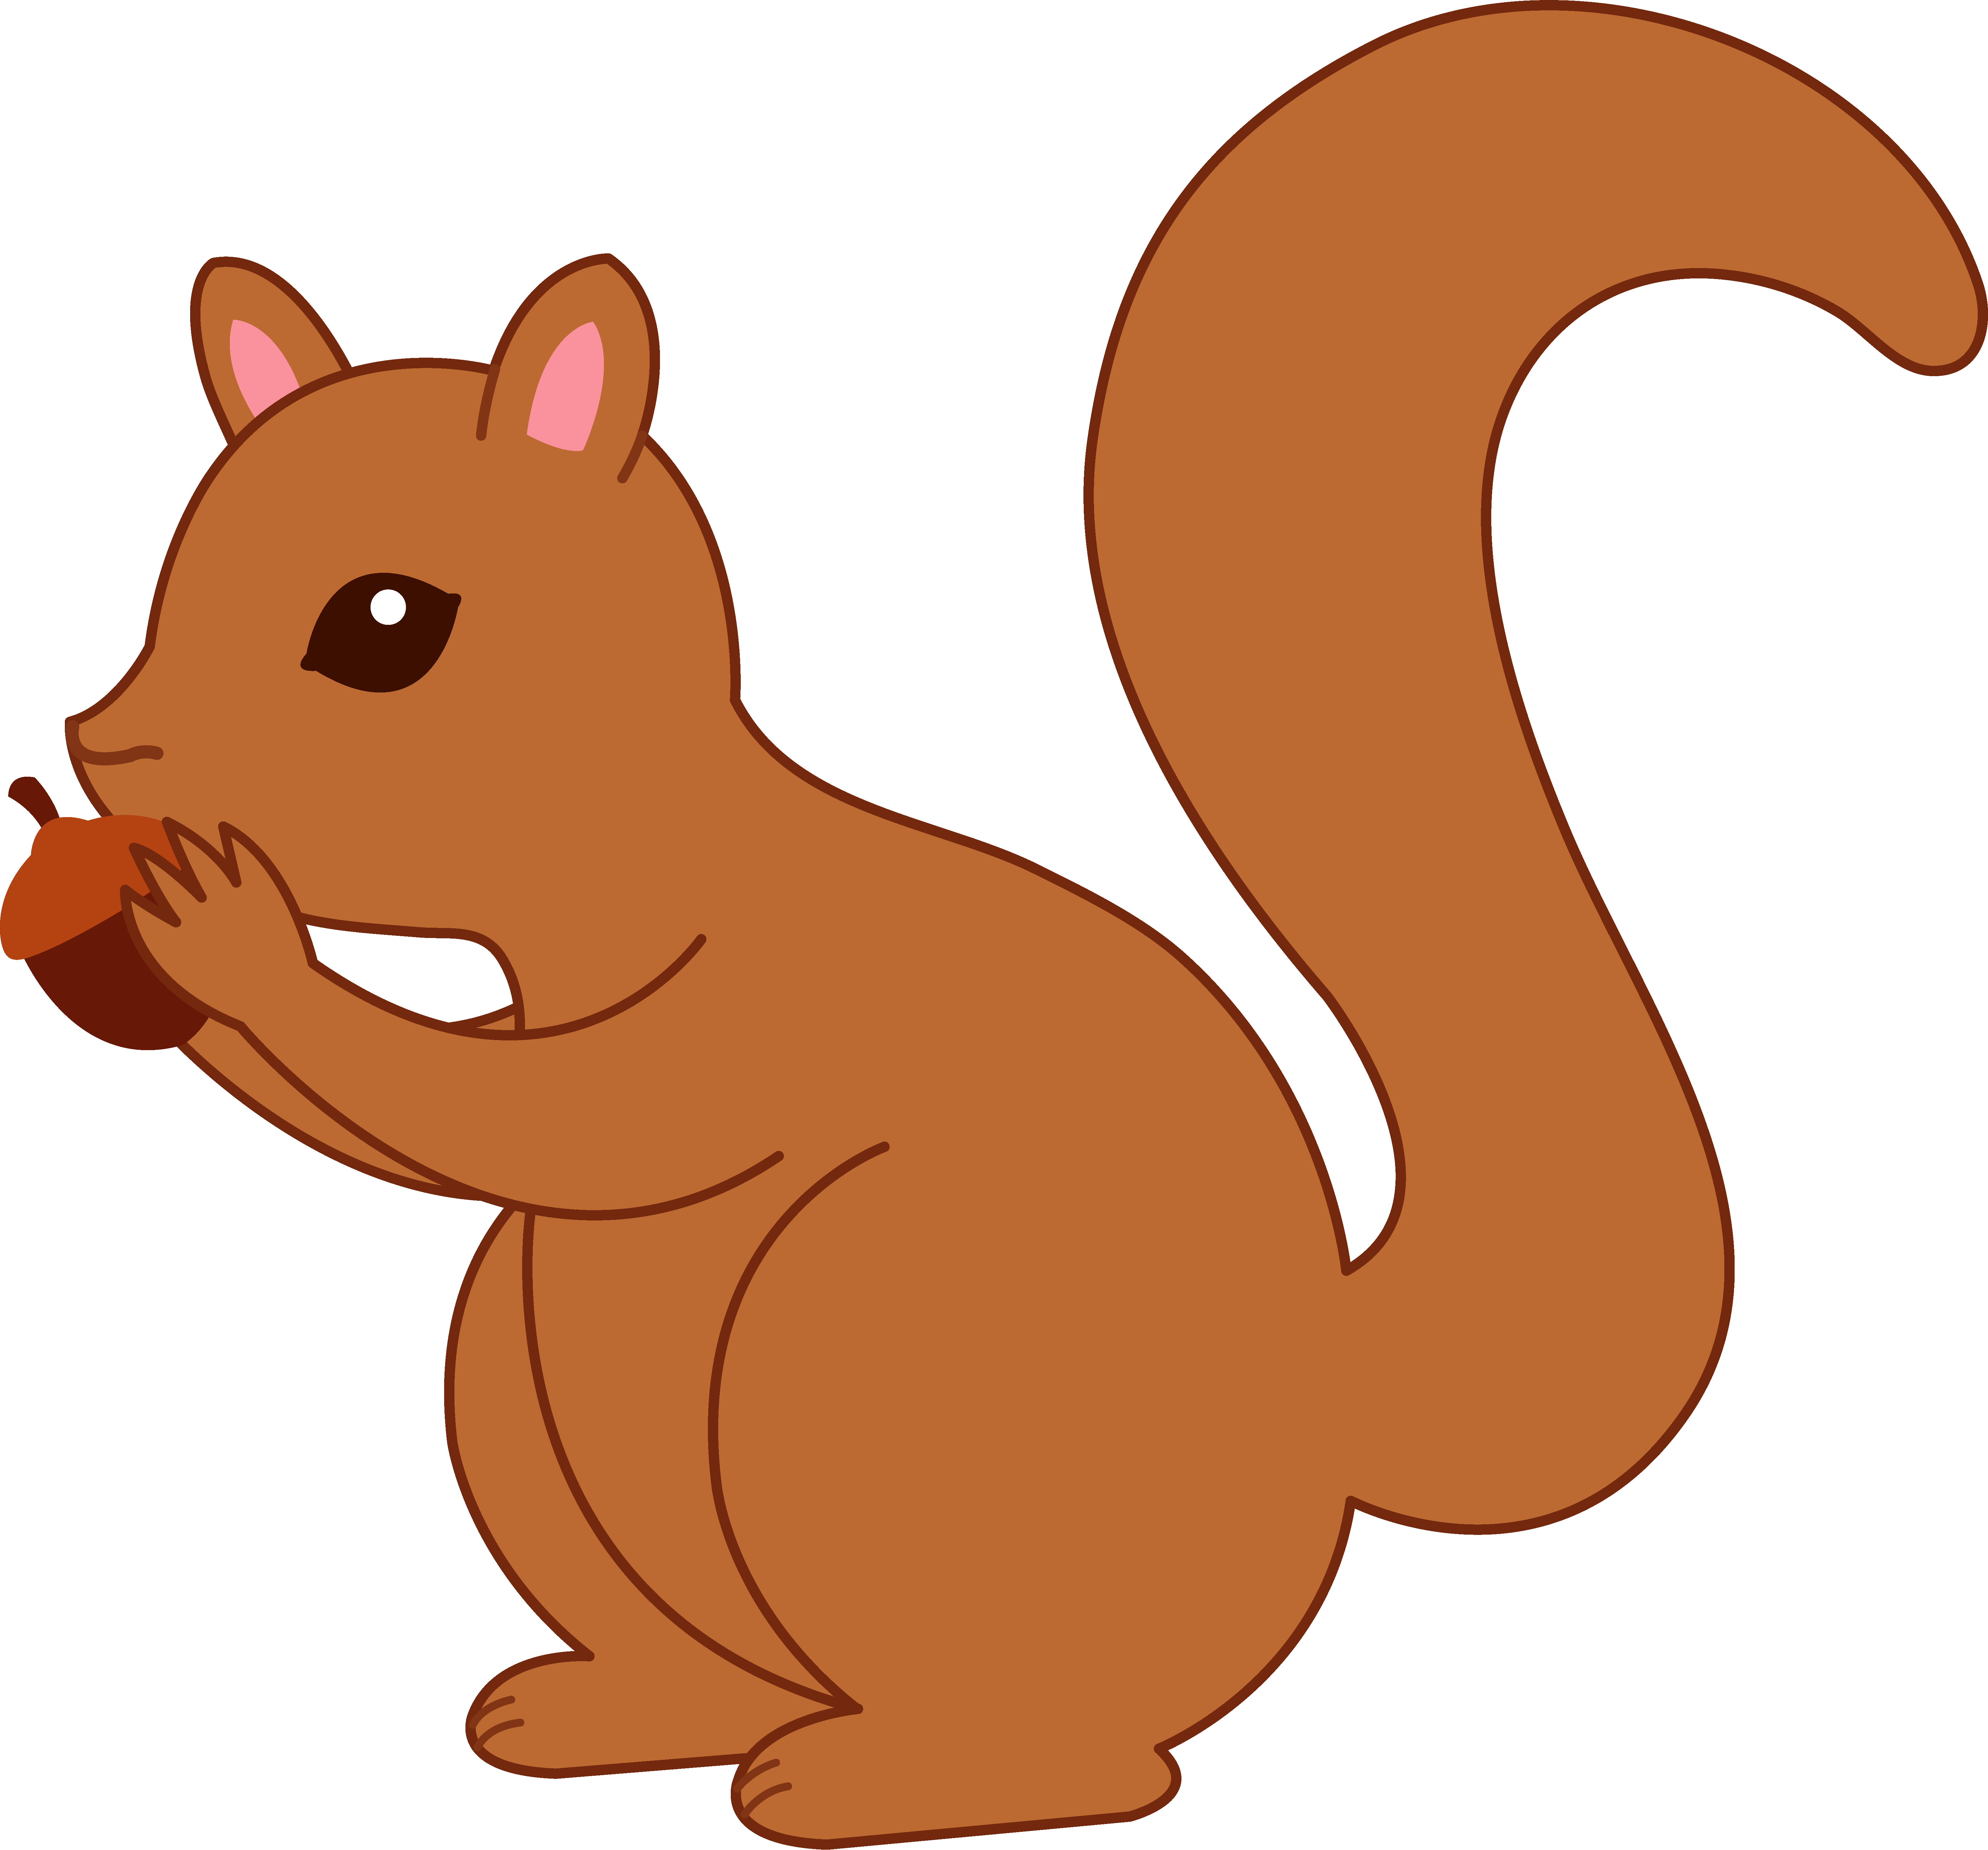 Animated squirrel clipart 4 » Clipart Portal.